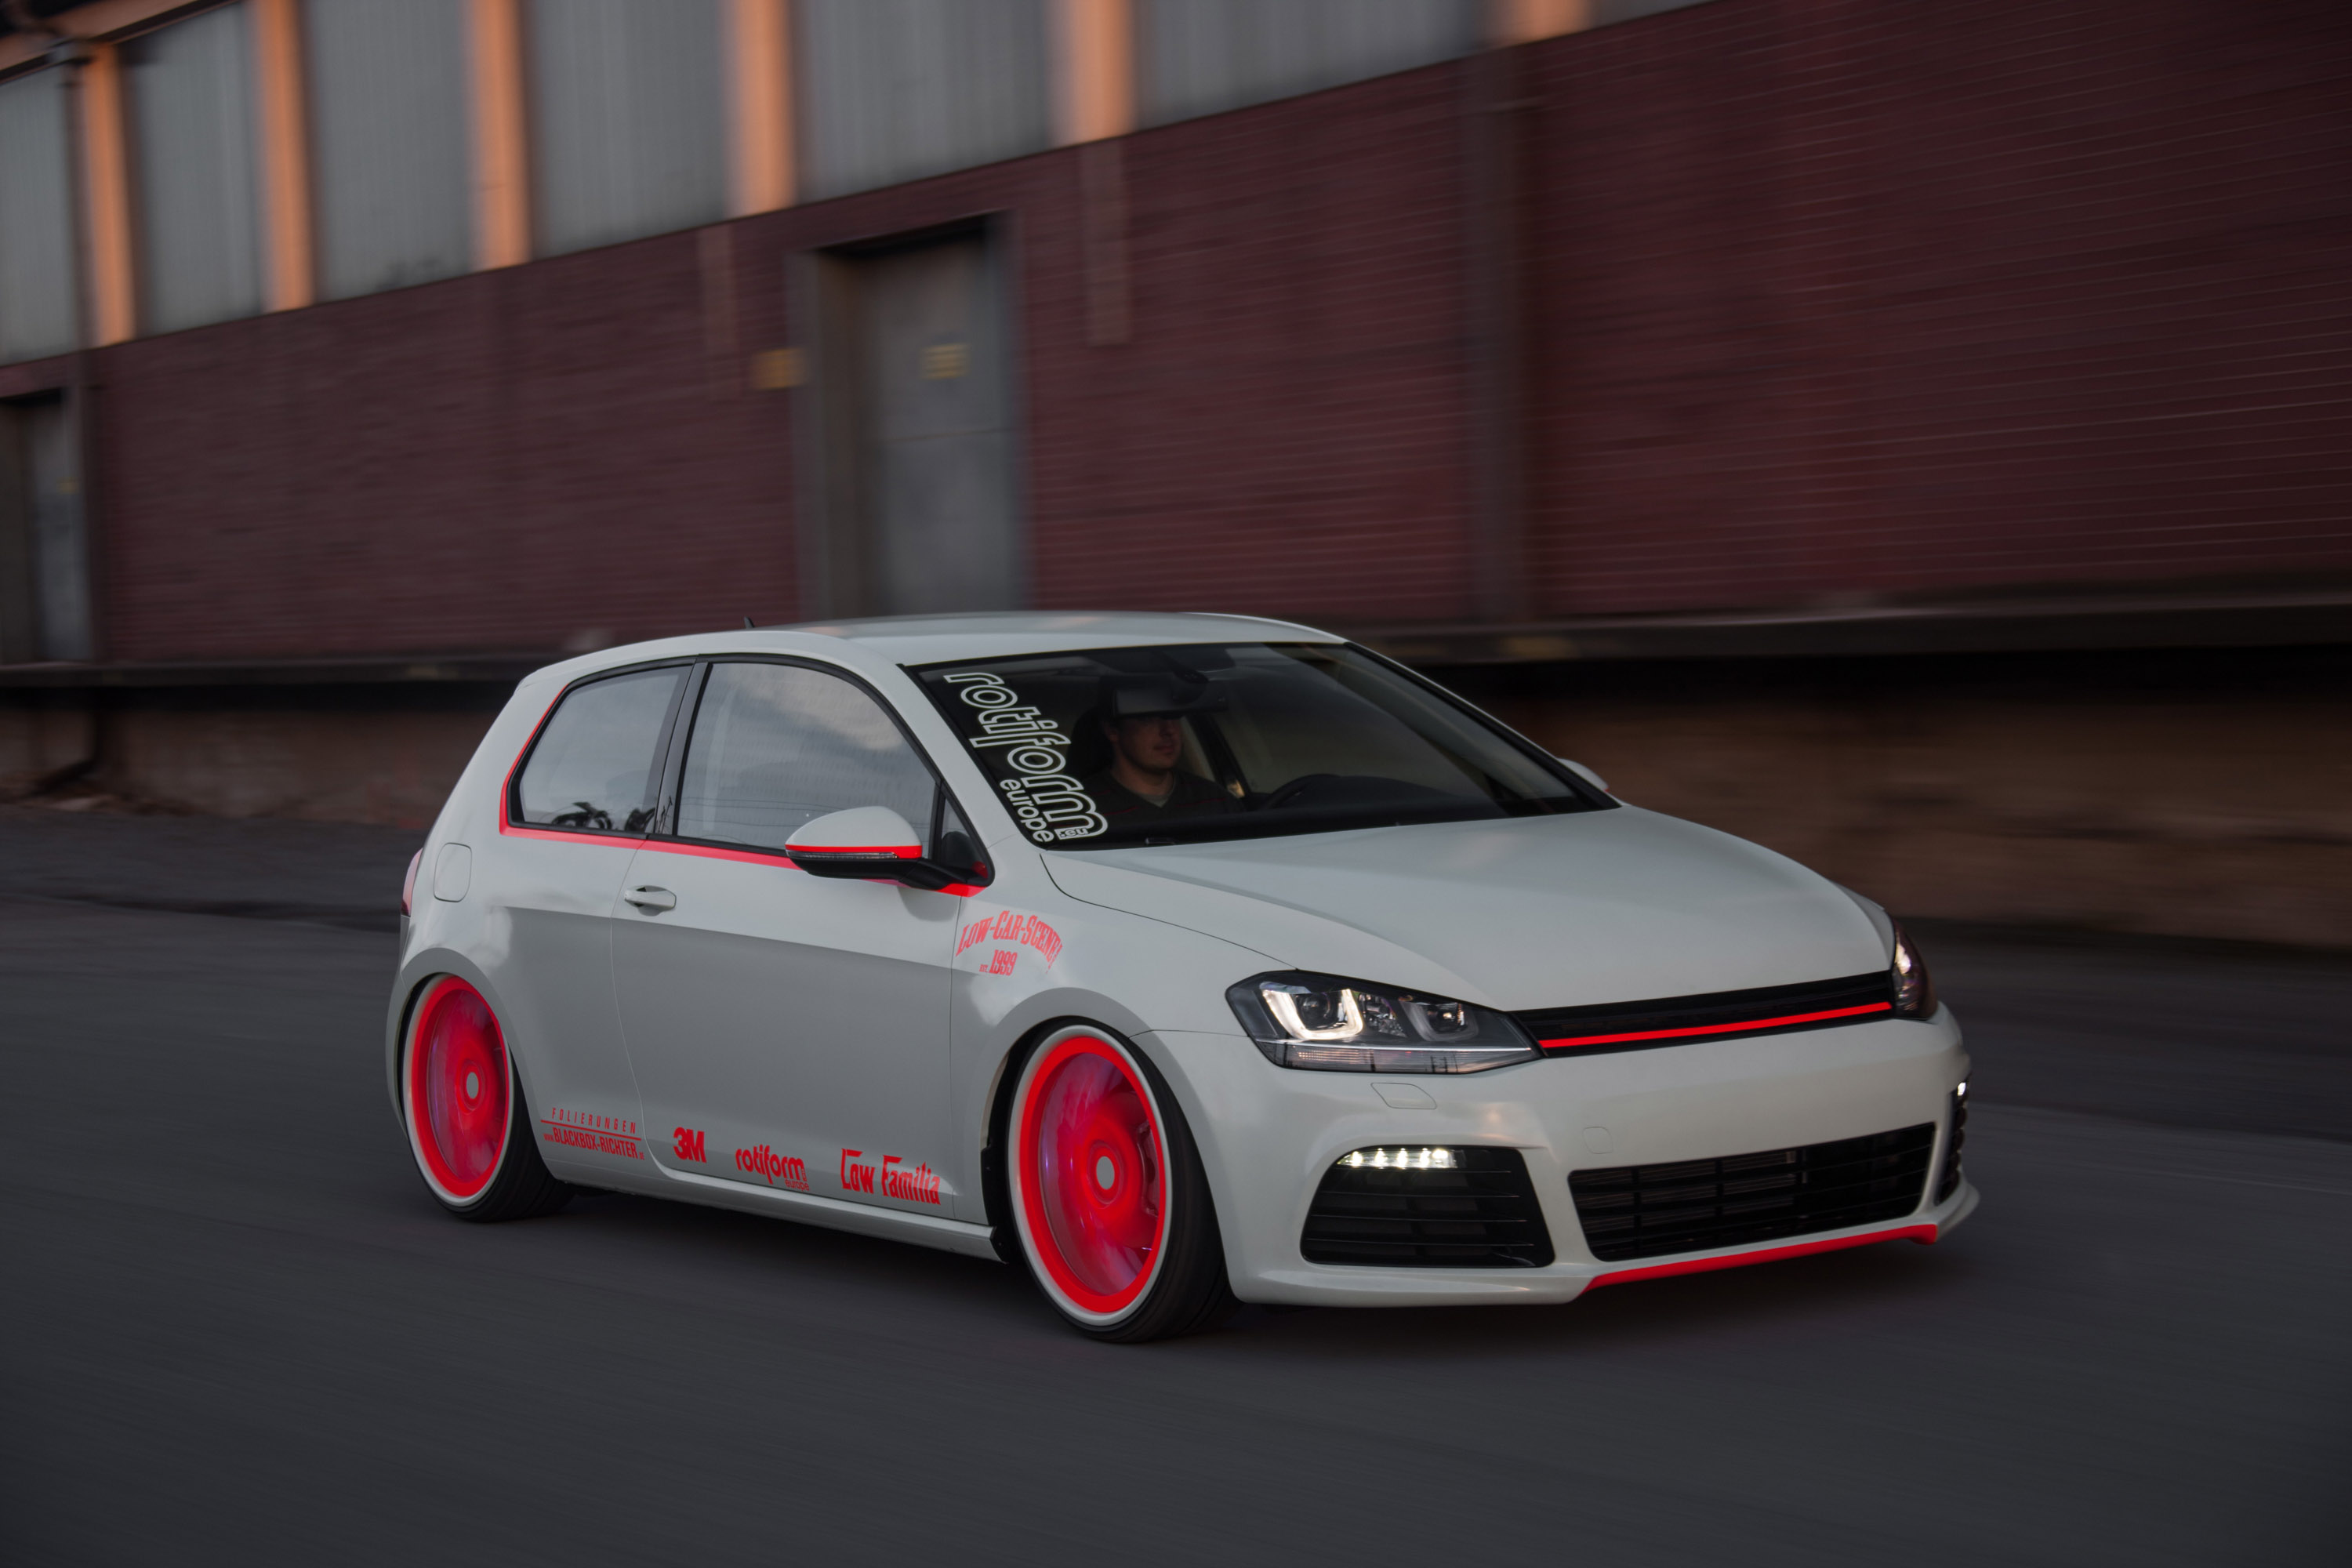 Volkswagen Golf VII Light-Tron by BlackBox-Richter and Low-Car-Scene